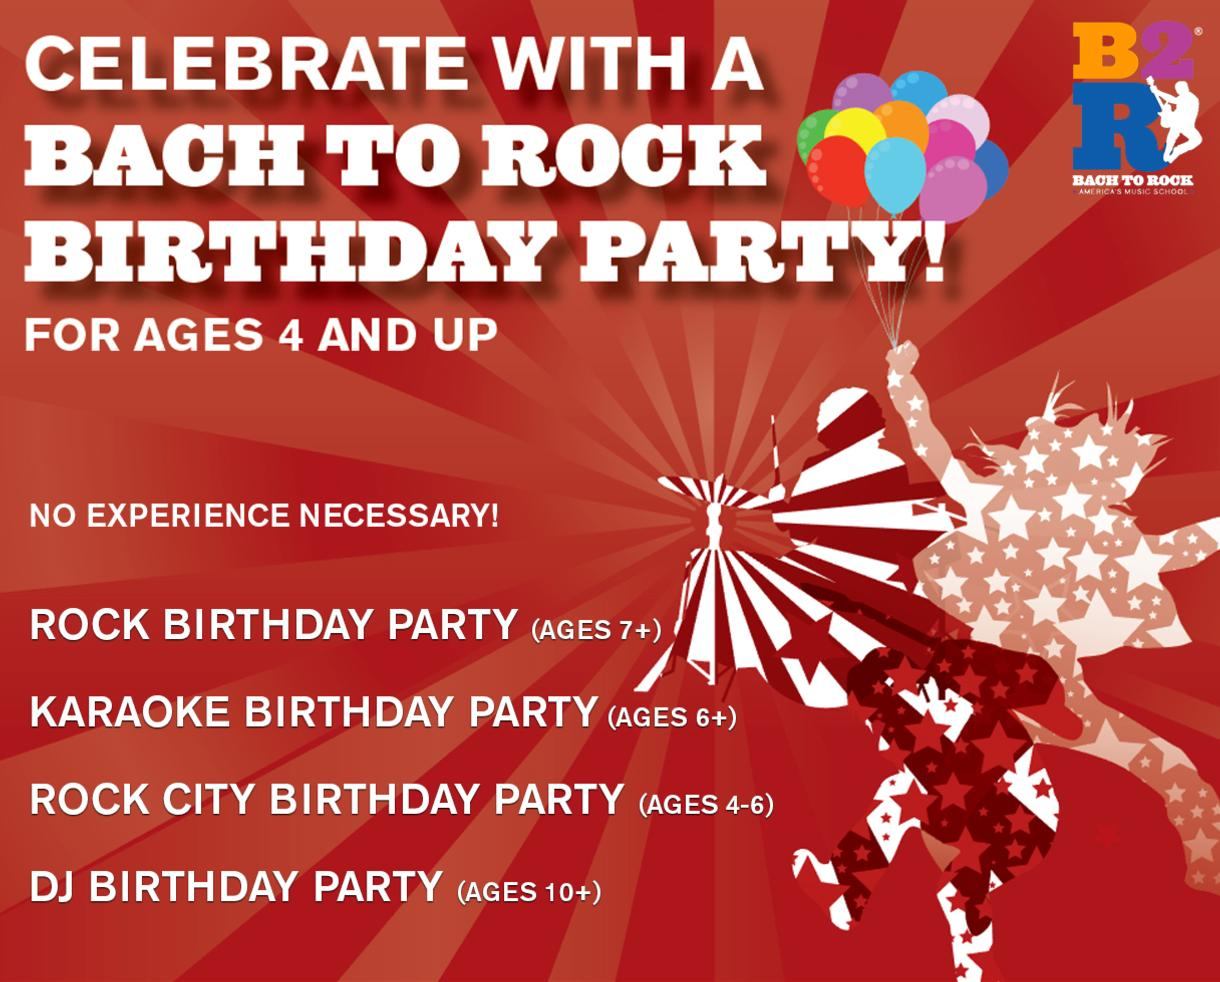 $199 for Bach to Rock Birthday Party for Up to 12 Kids Ages 4 and Up - 7 Locations! (34% Off)